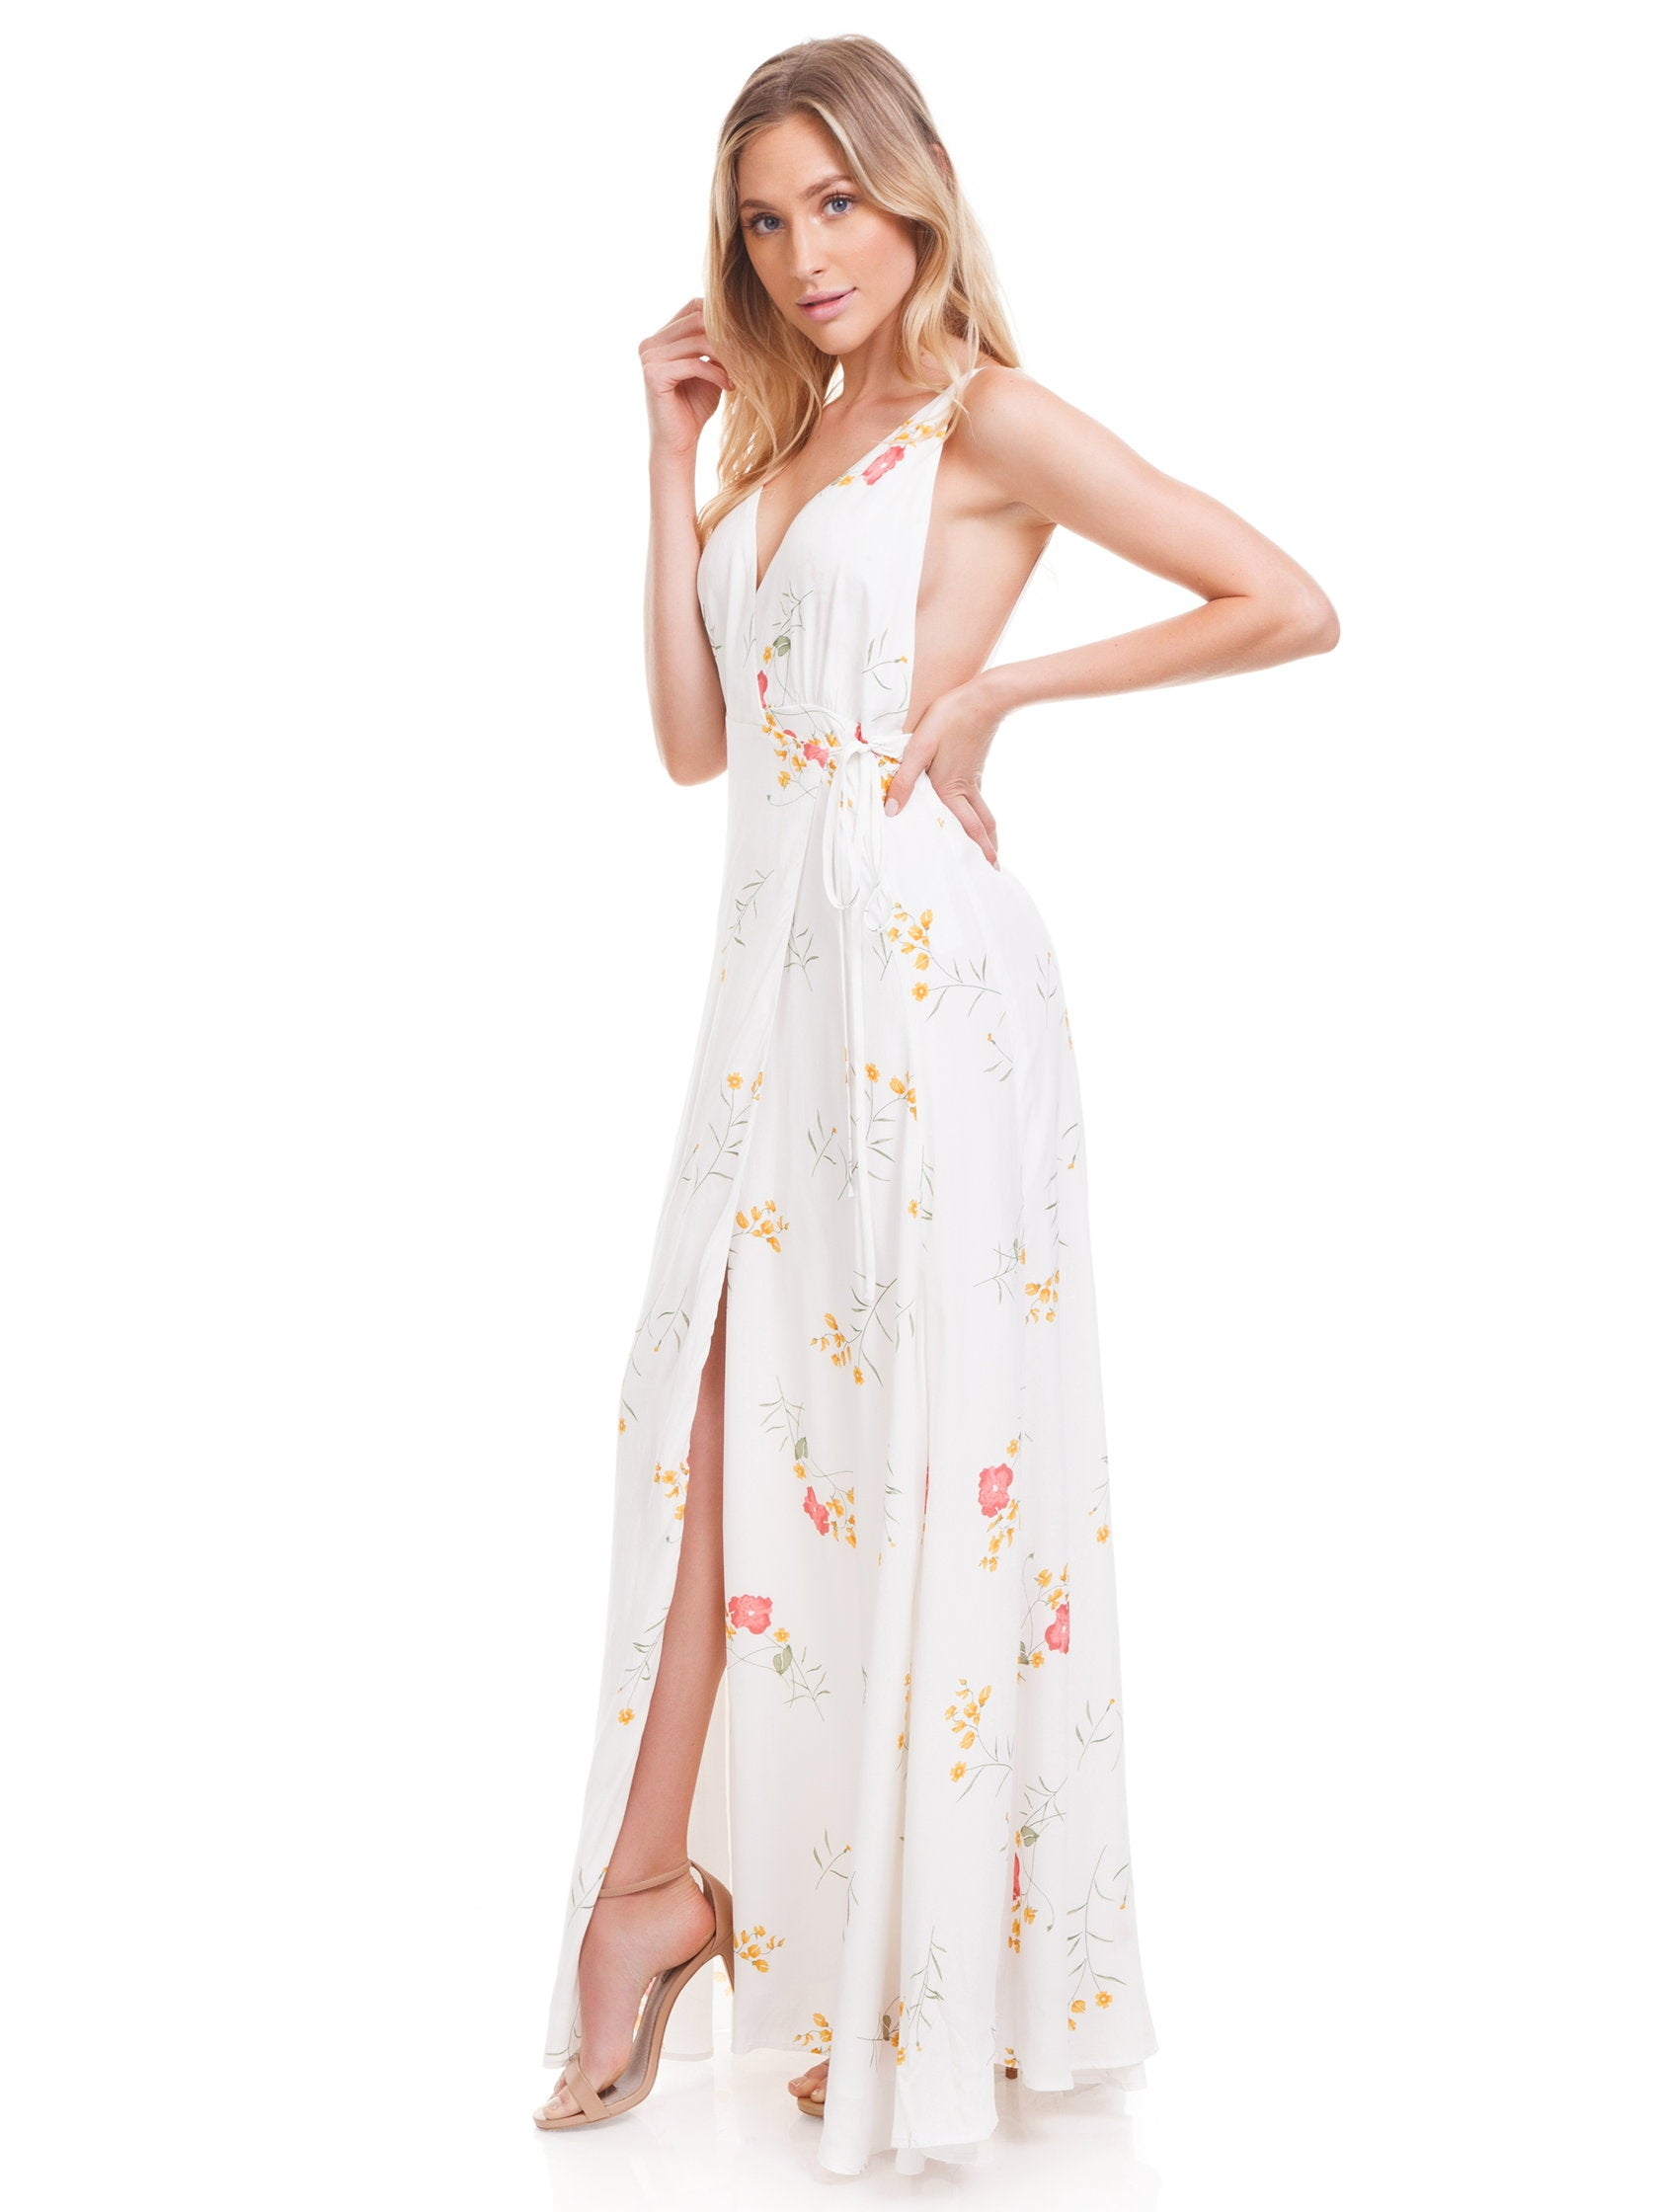 Woman wearing a dress rental from Capulet called Maxine Maxi Dress